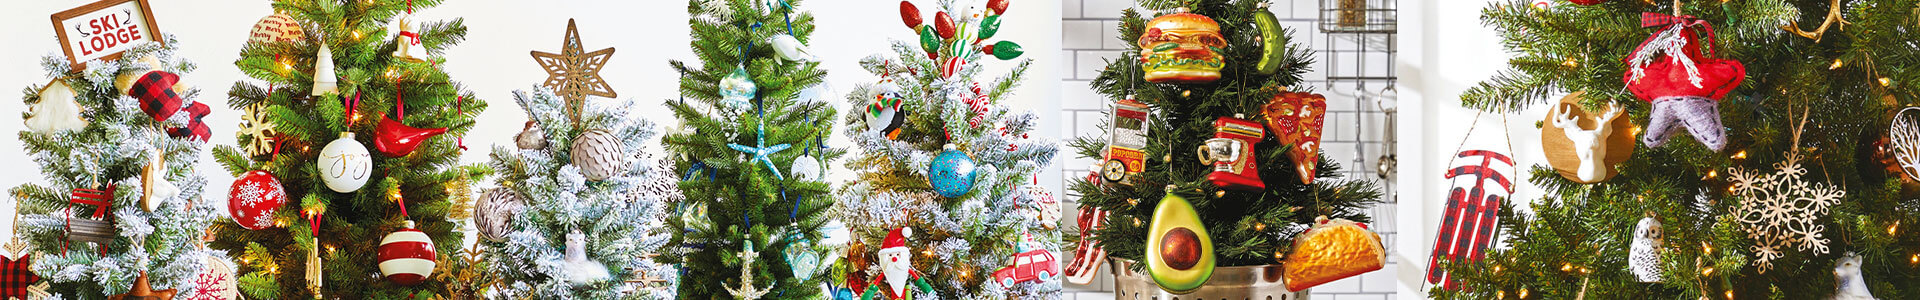 artificial christmas trees tree decorations and more joann artificial christmas trees tree